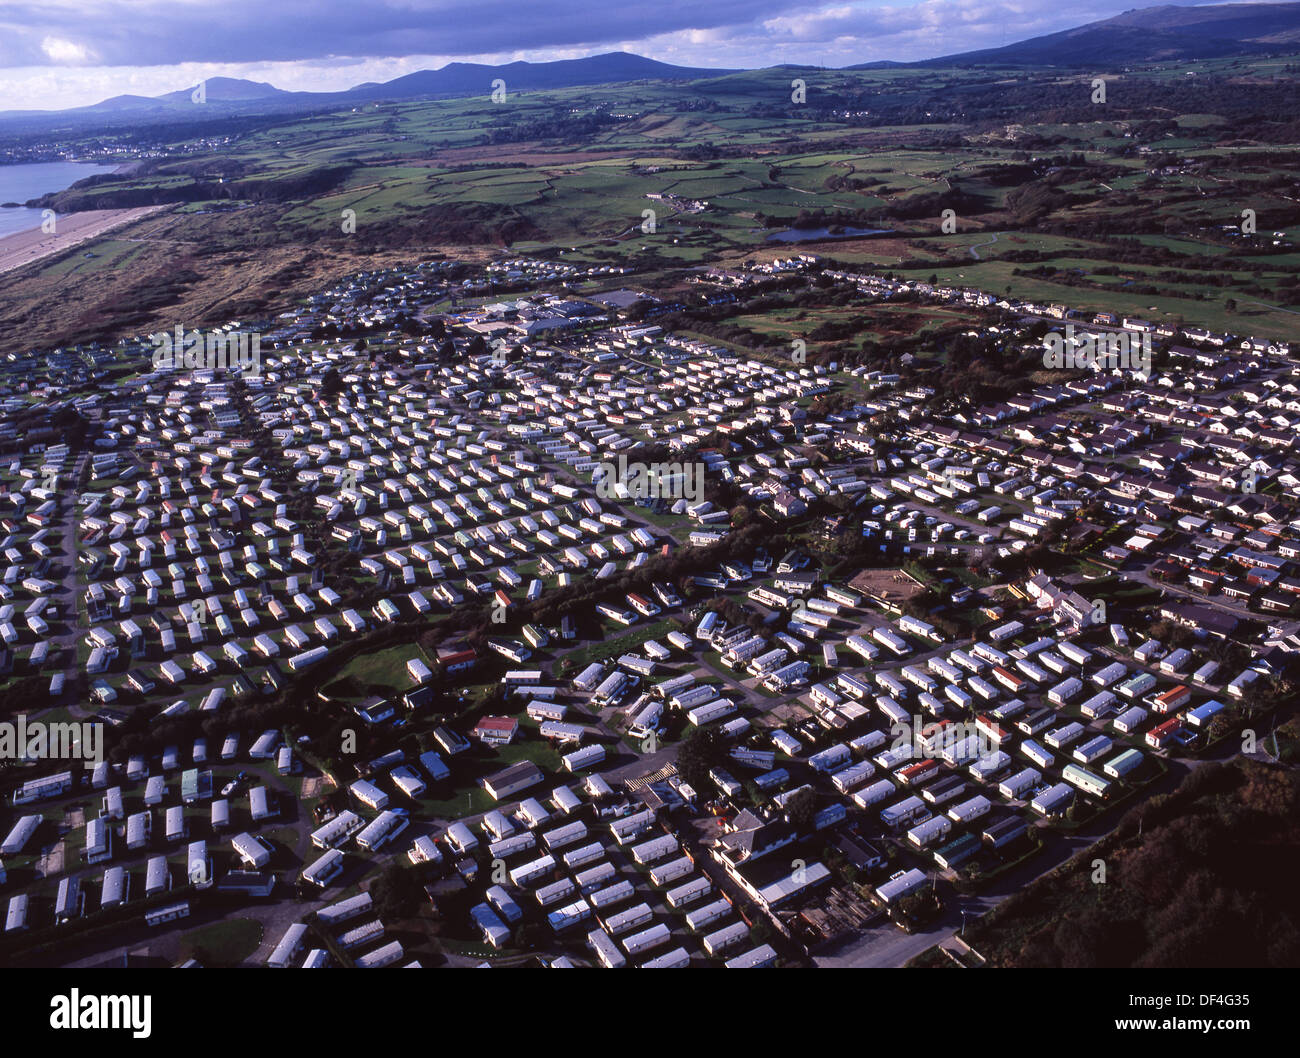 Morfa Bychan Aerial View Of Large Caravan Park With Hundreds Mobile Homes And Village Llyn Peninsula North Wales UK